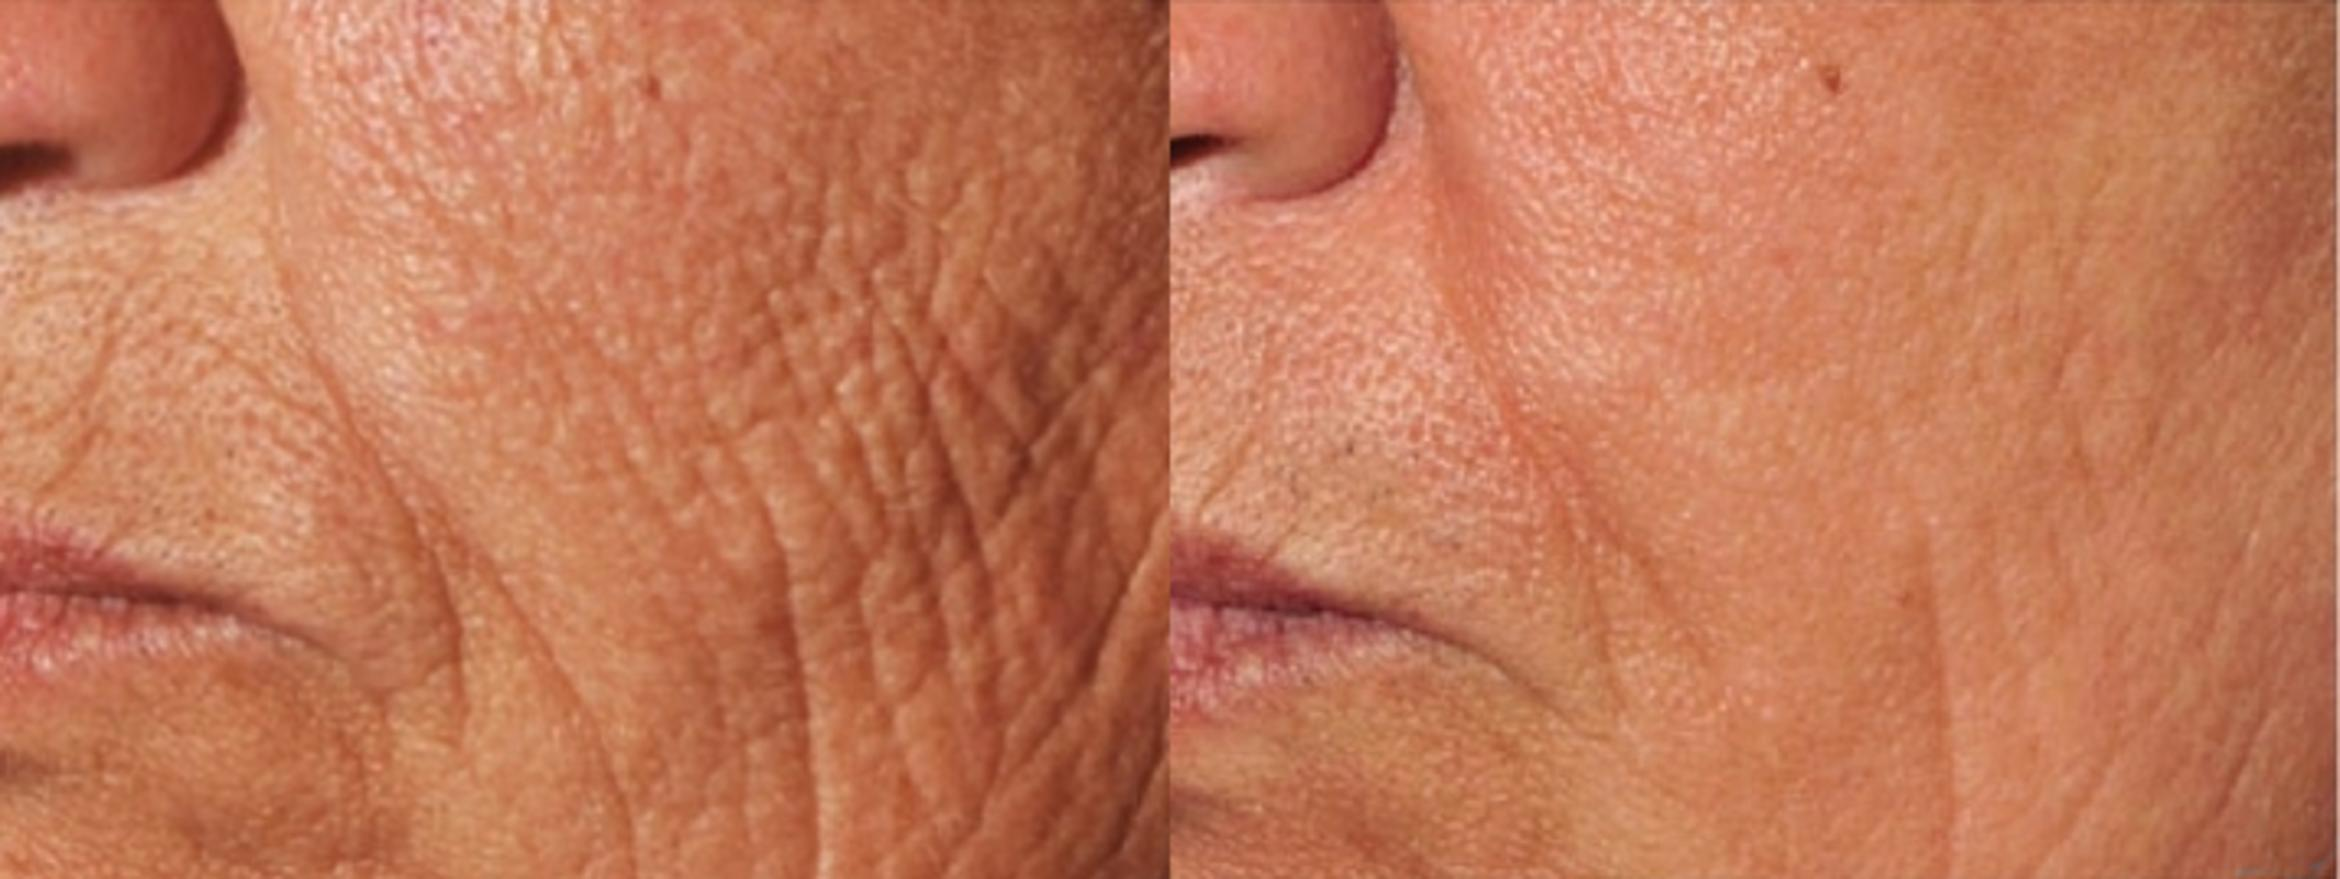 Laser Skin Resurfacing Case 16 Before & After Left Oblique | Livermore, CA | Silhouette Med Spa & Weight Management